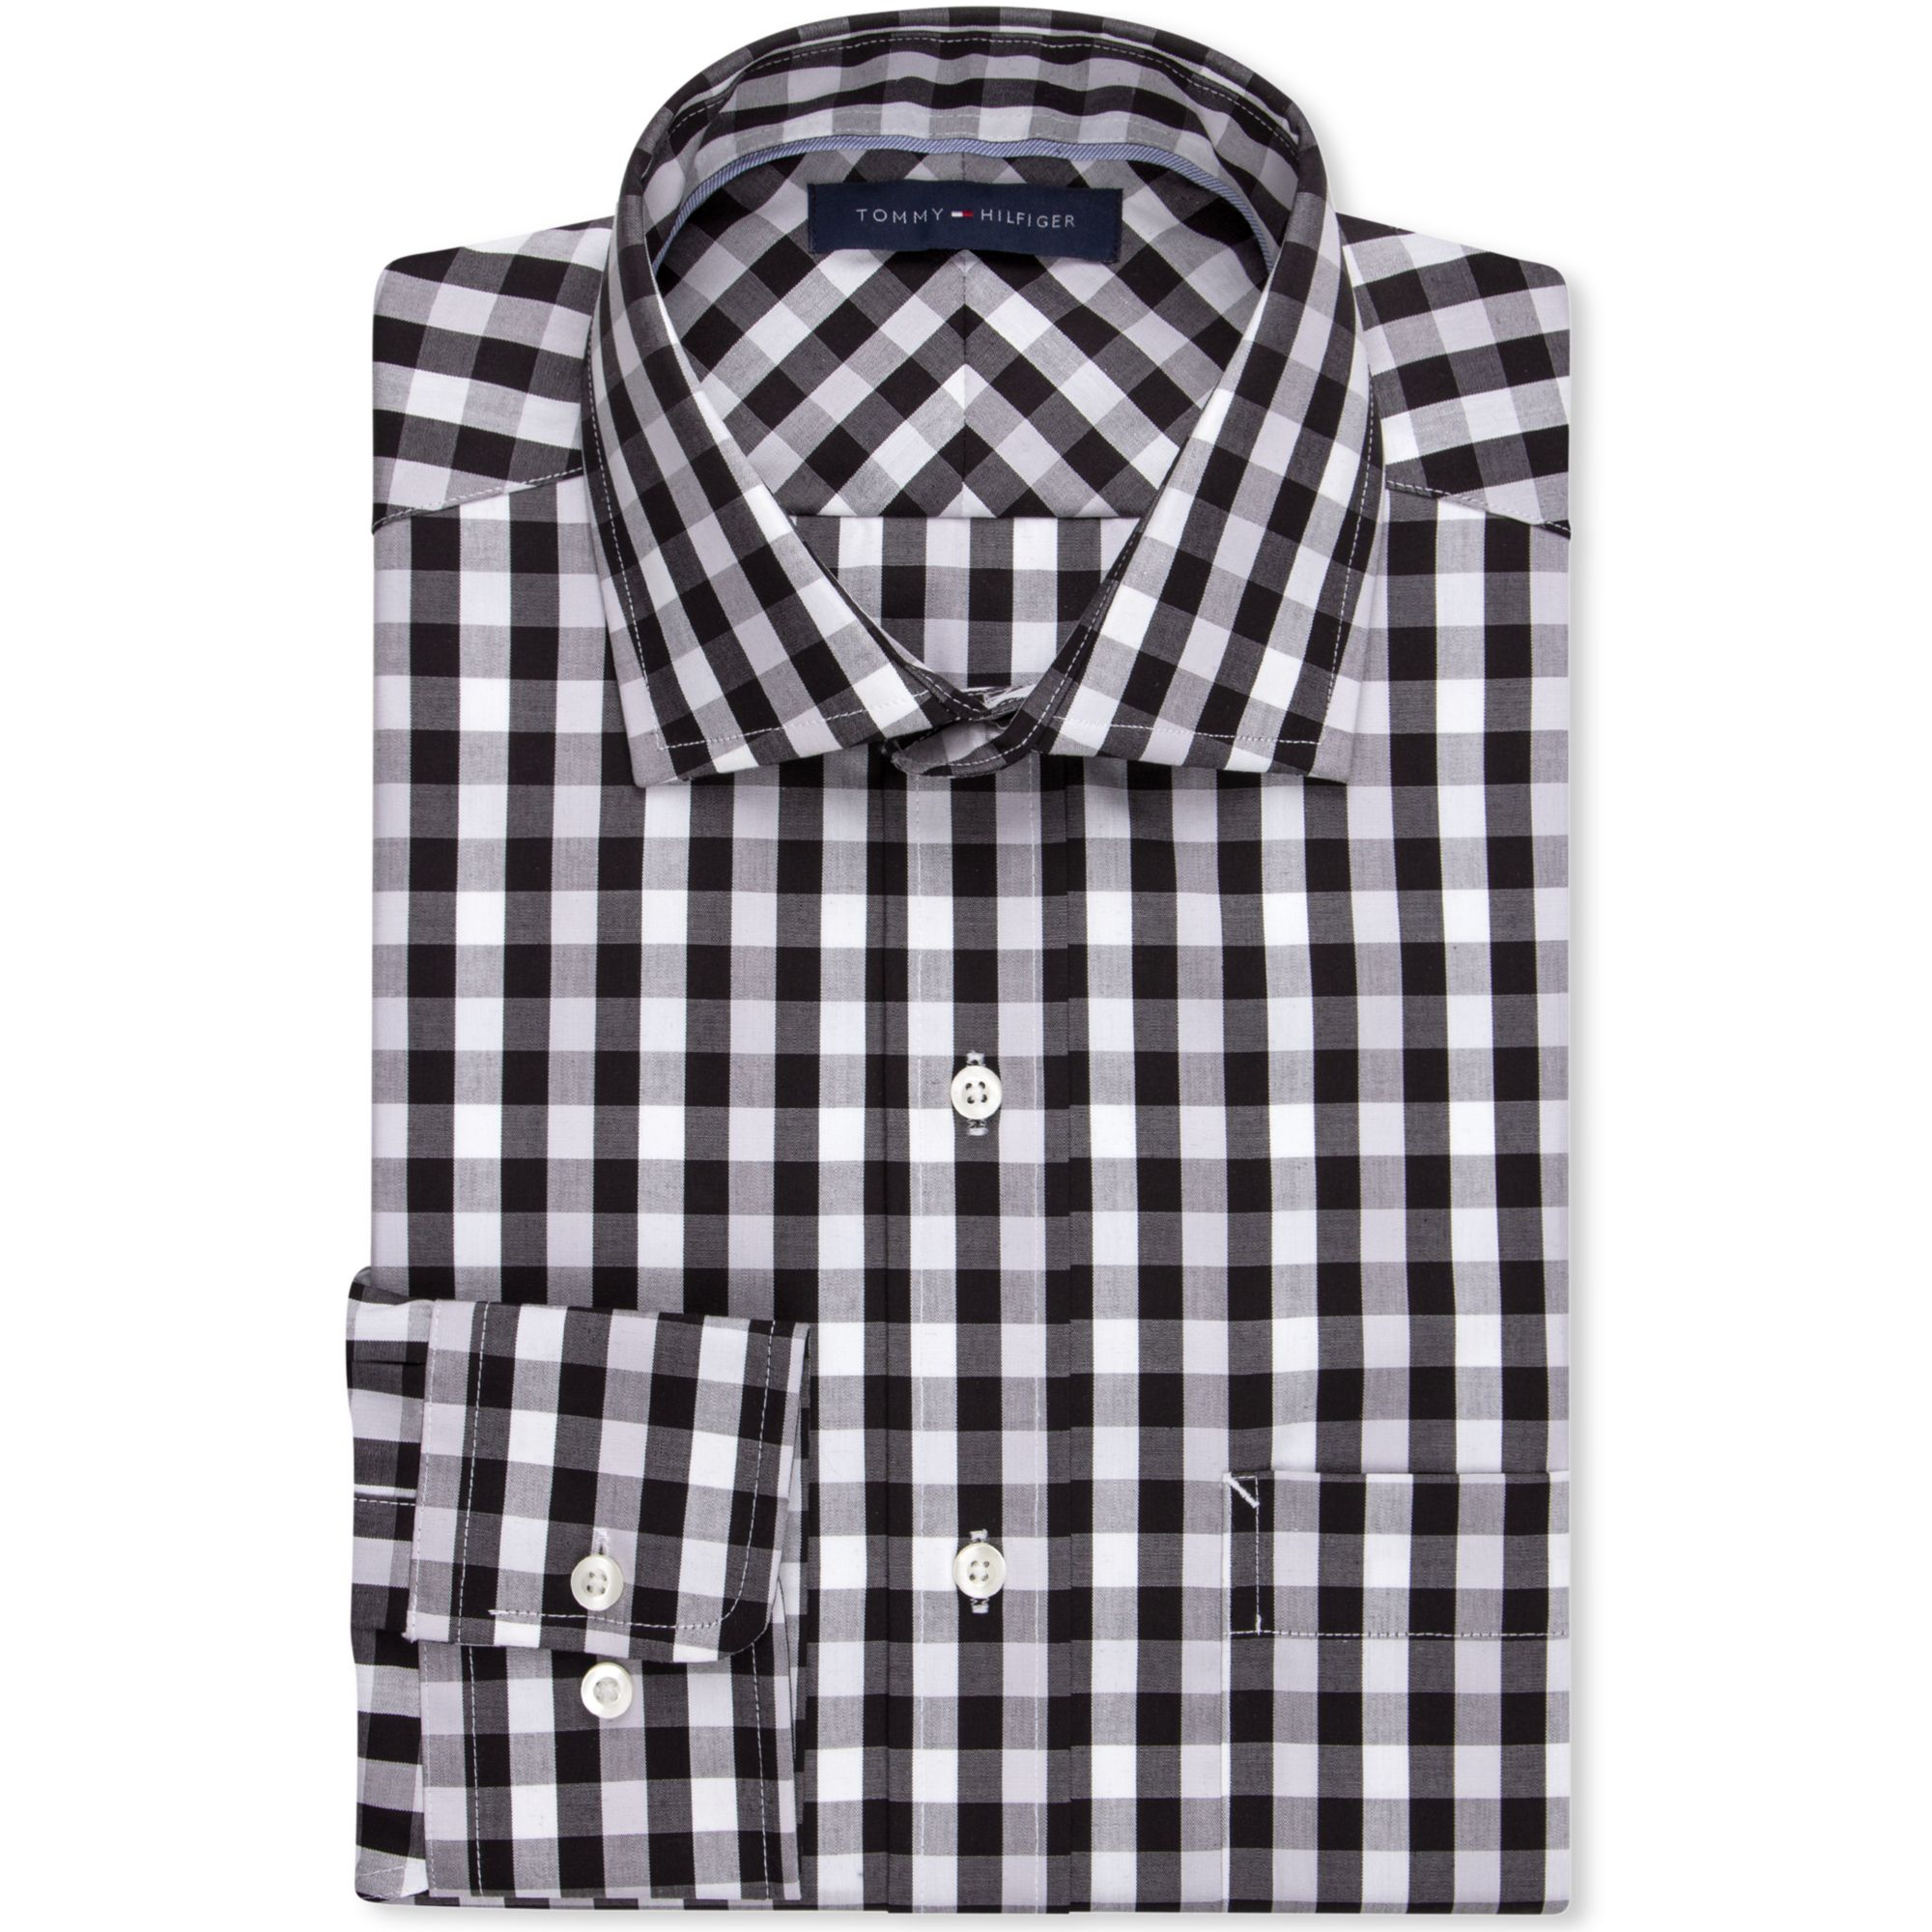 A true athletic fit crafted from our Athletic Performance Fabric, this black check dress shirt has a semi-spread collar and is as light and comfortable as it heresfilmz8.ga first glance